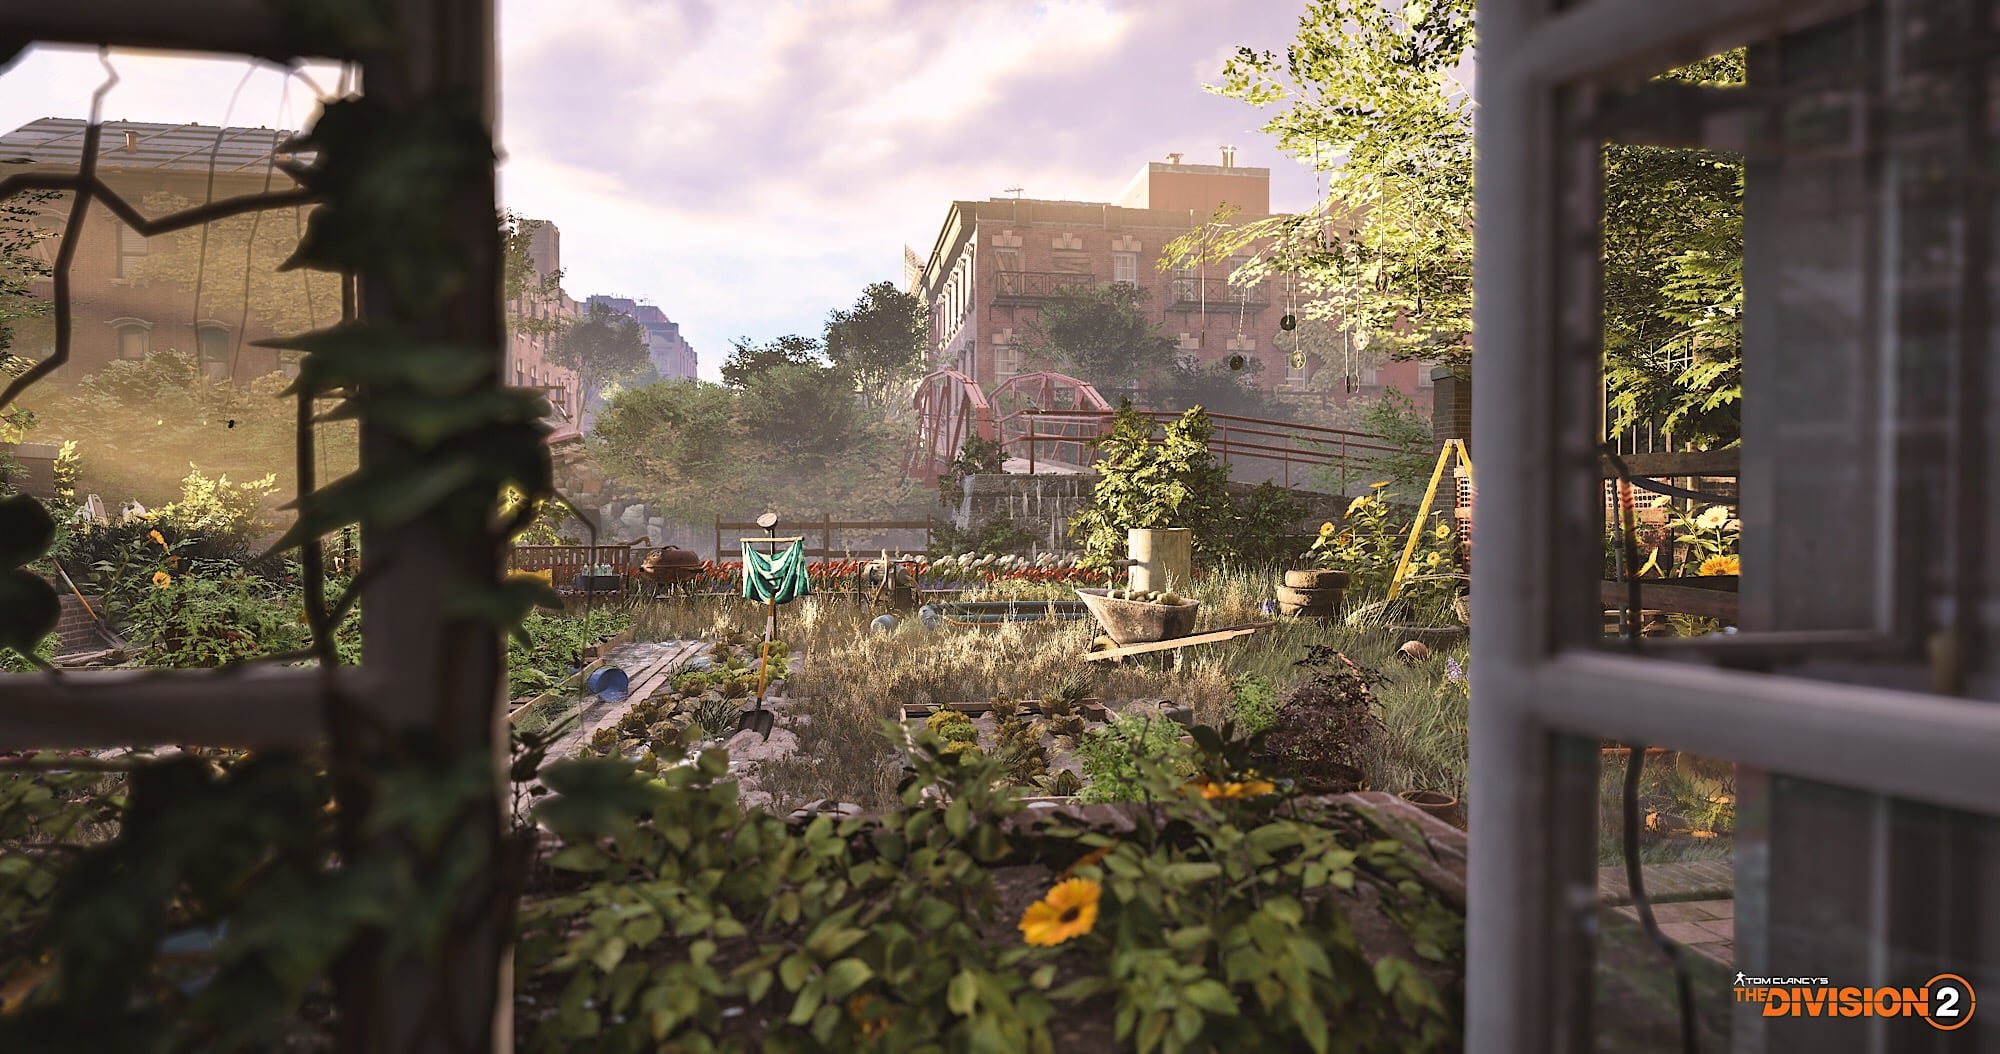 The Division 2 Ubisoft Aftershow Video, Screenshots, Other Art Released